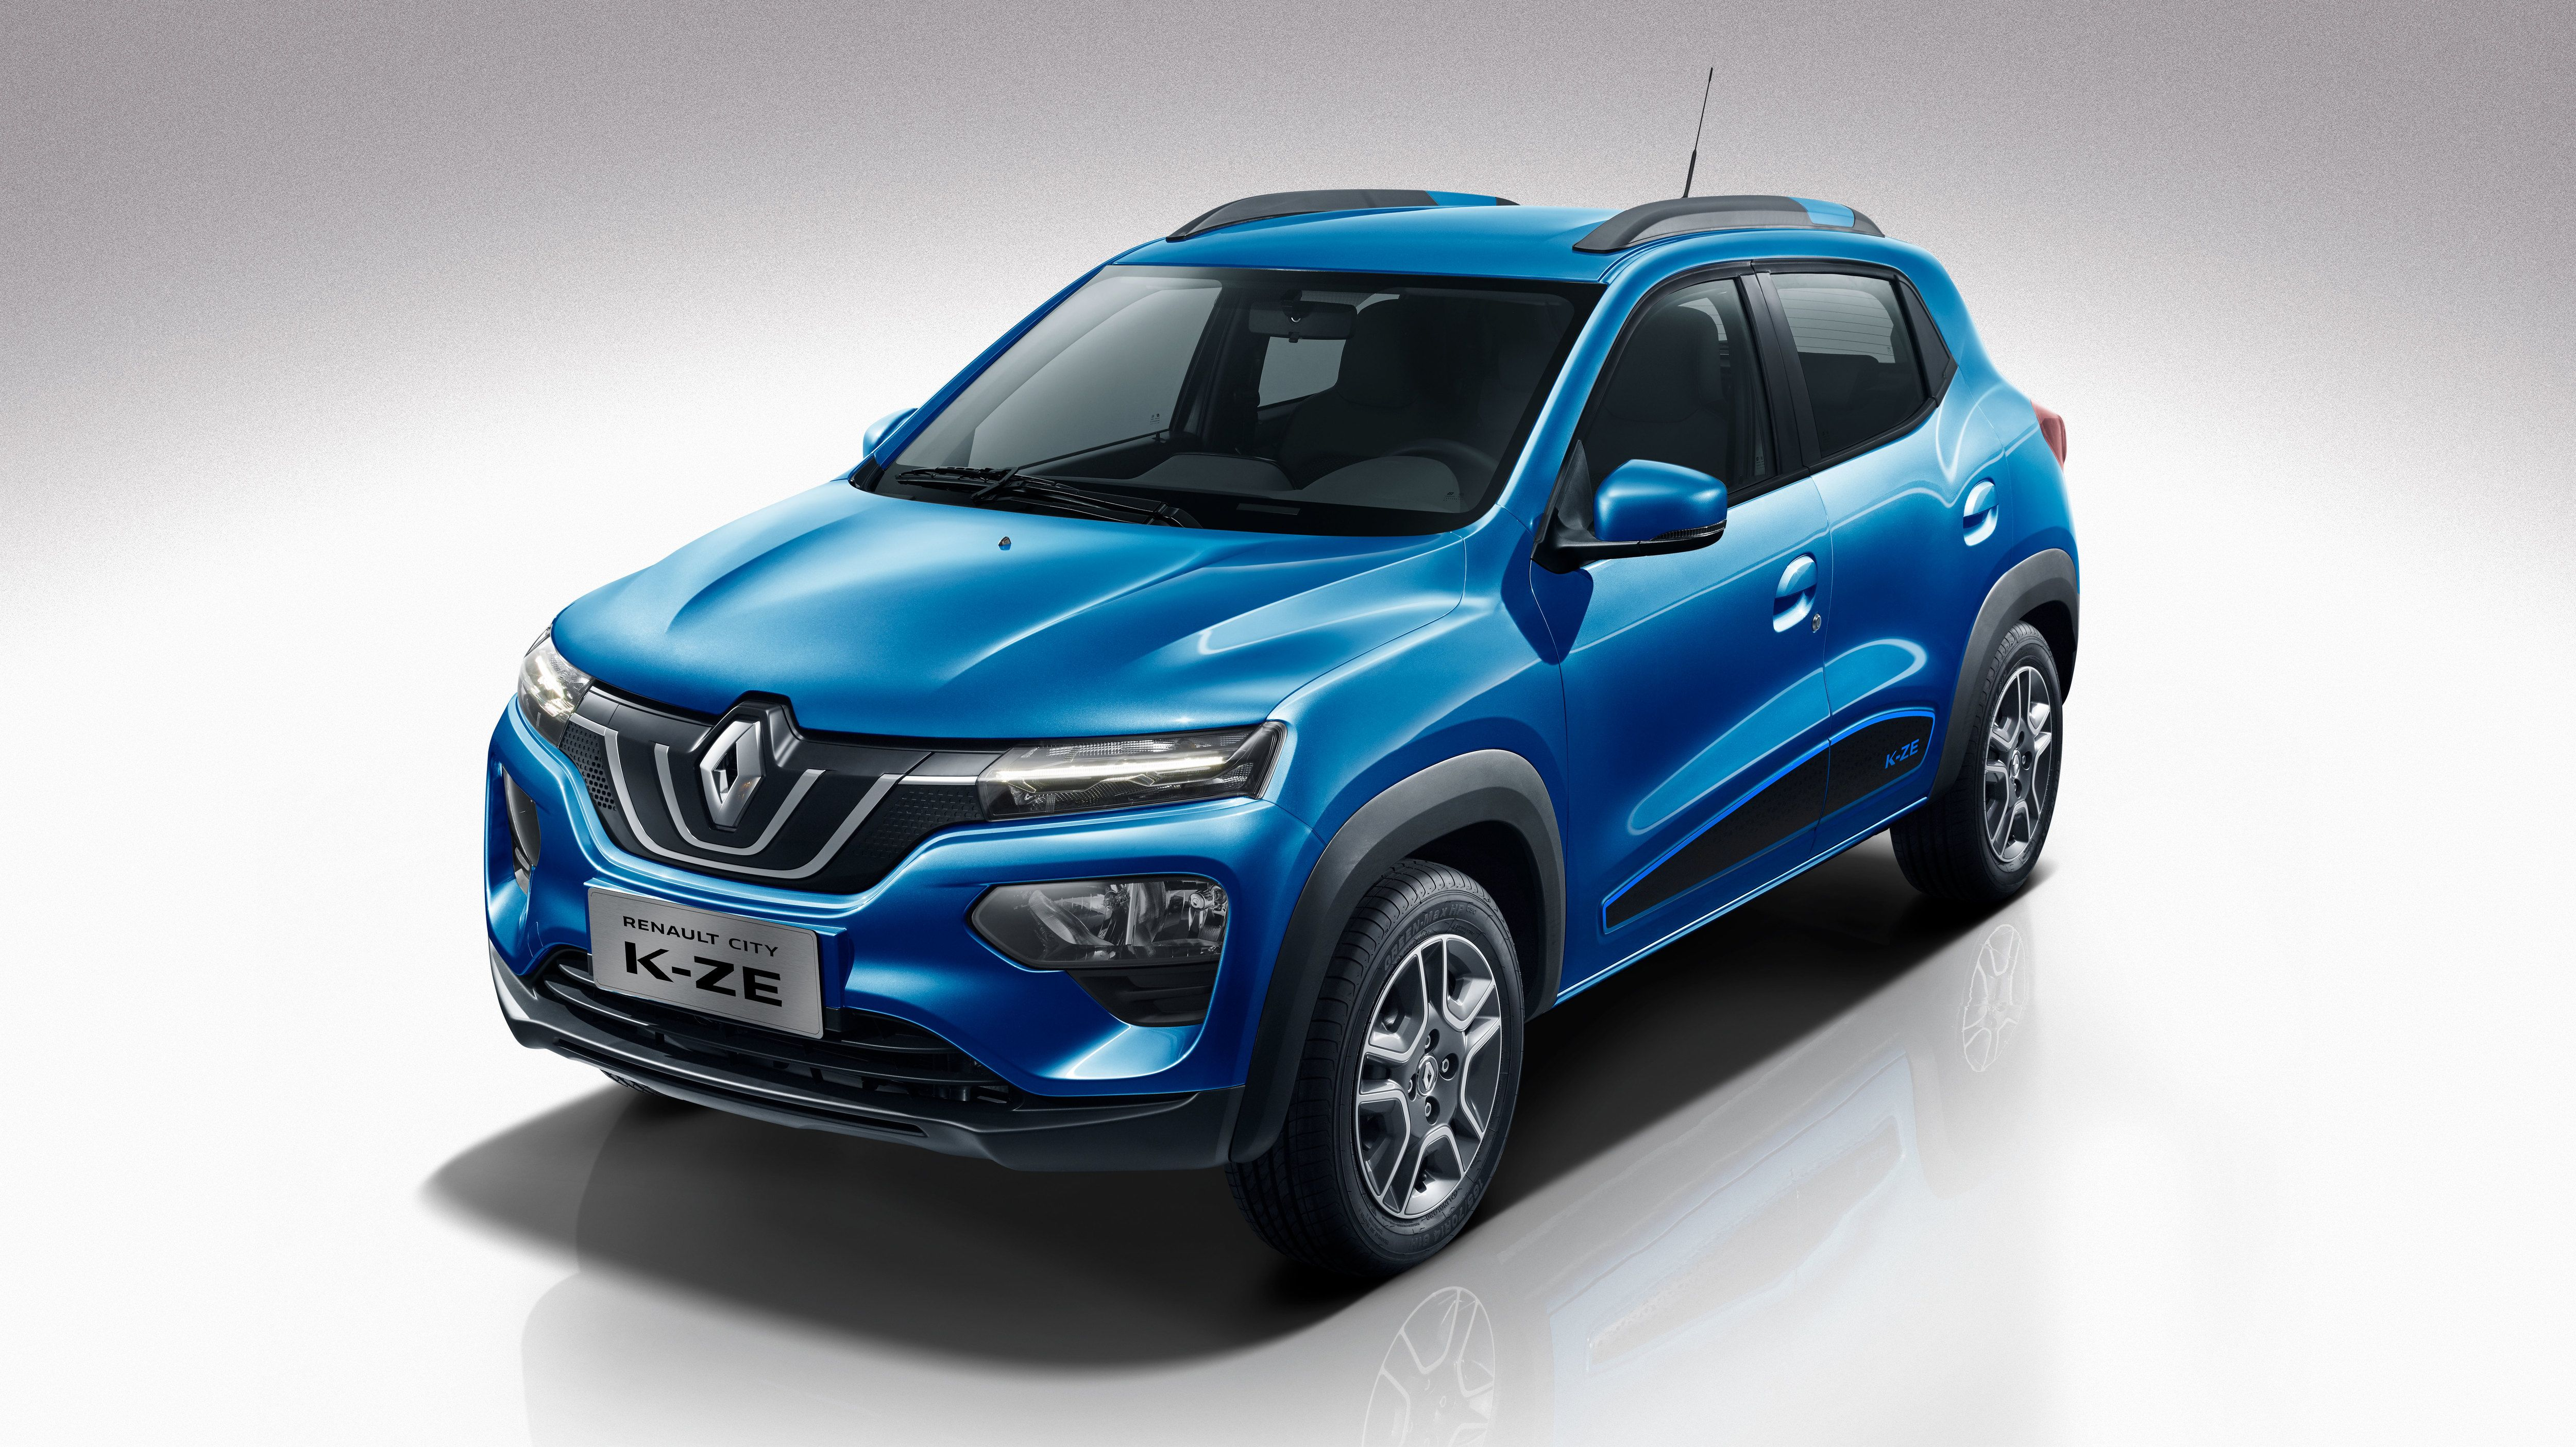 The 2020 Renault K Ze Ev Showed Up In Shanghai Ready For Production Top Speed Renault Electric Cars Electric Car